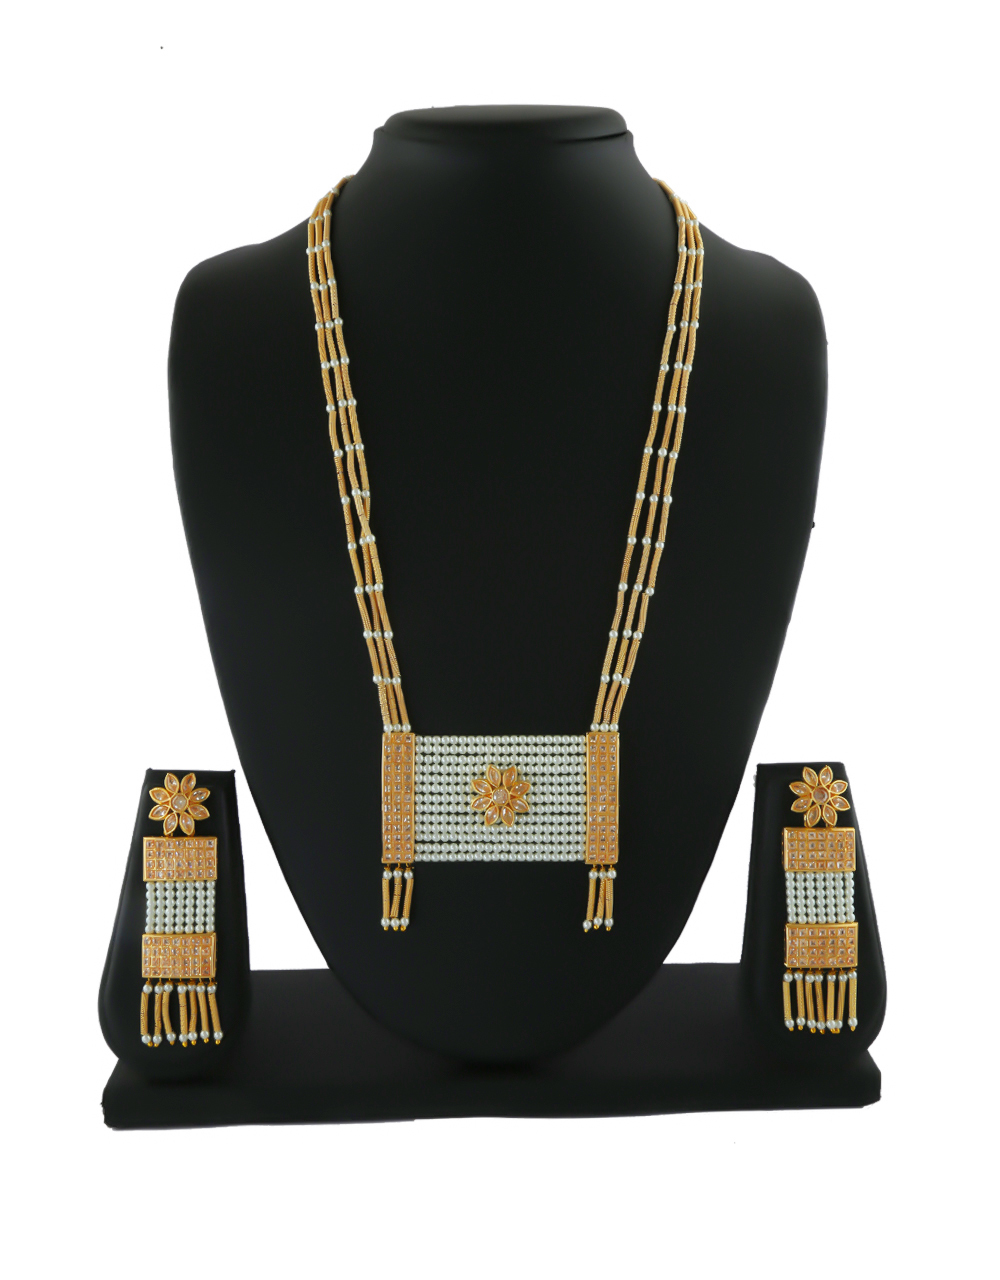 Designer Gold Finish Styled With Pearls Beads Necklace